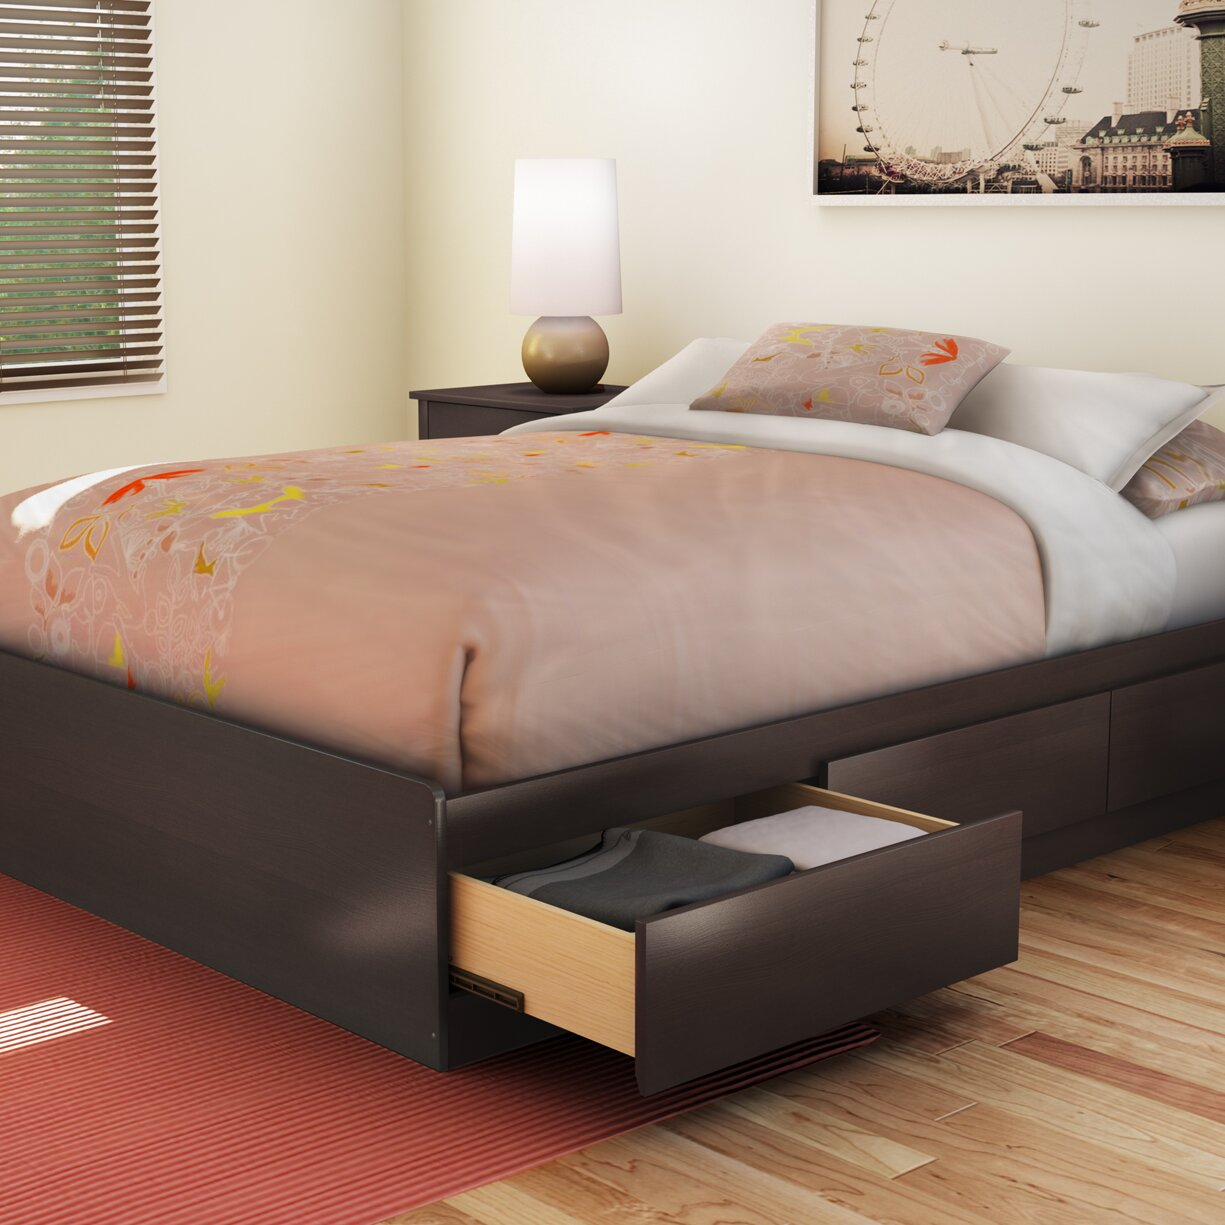 Full/Double Storage Platform Bed